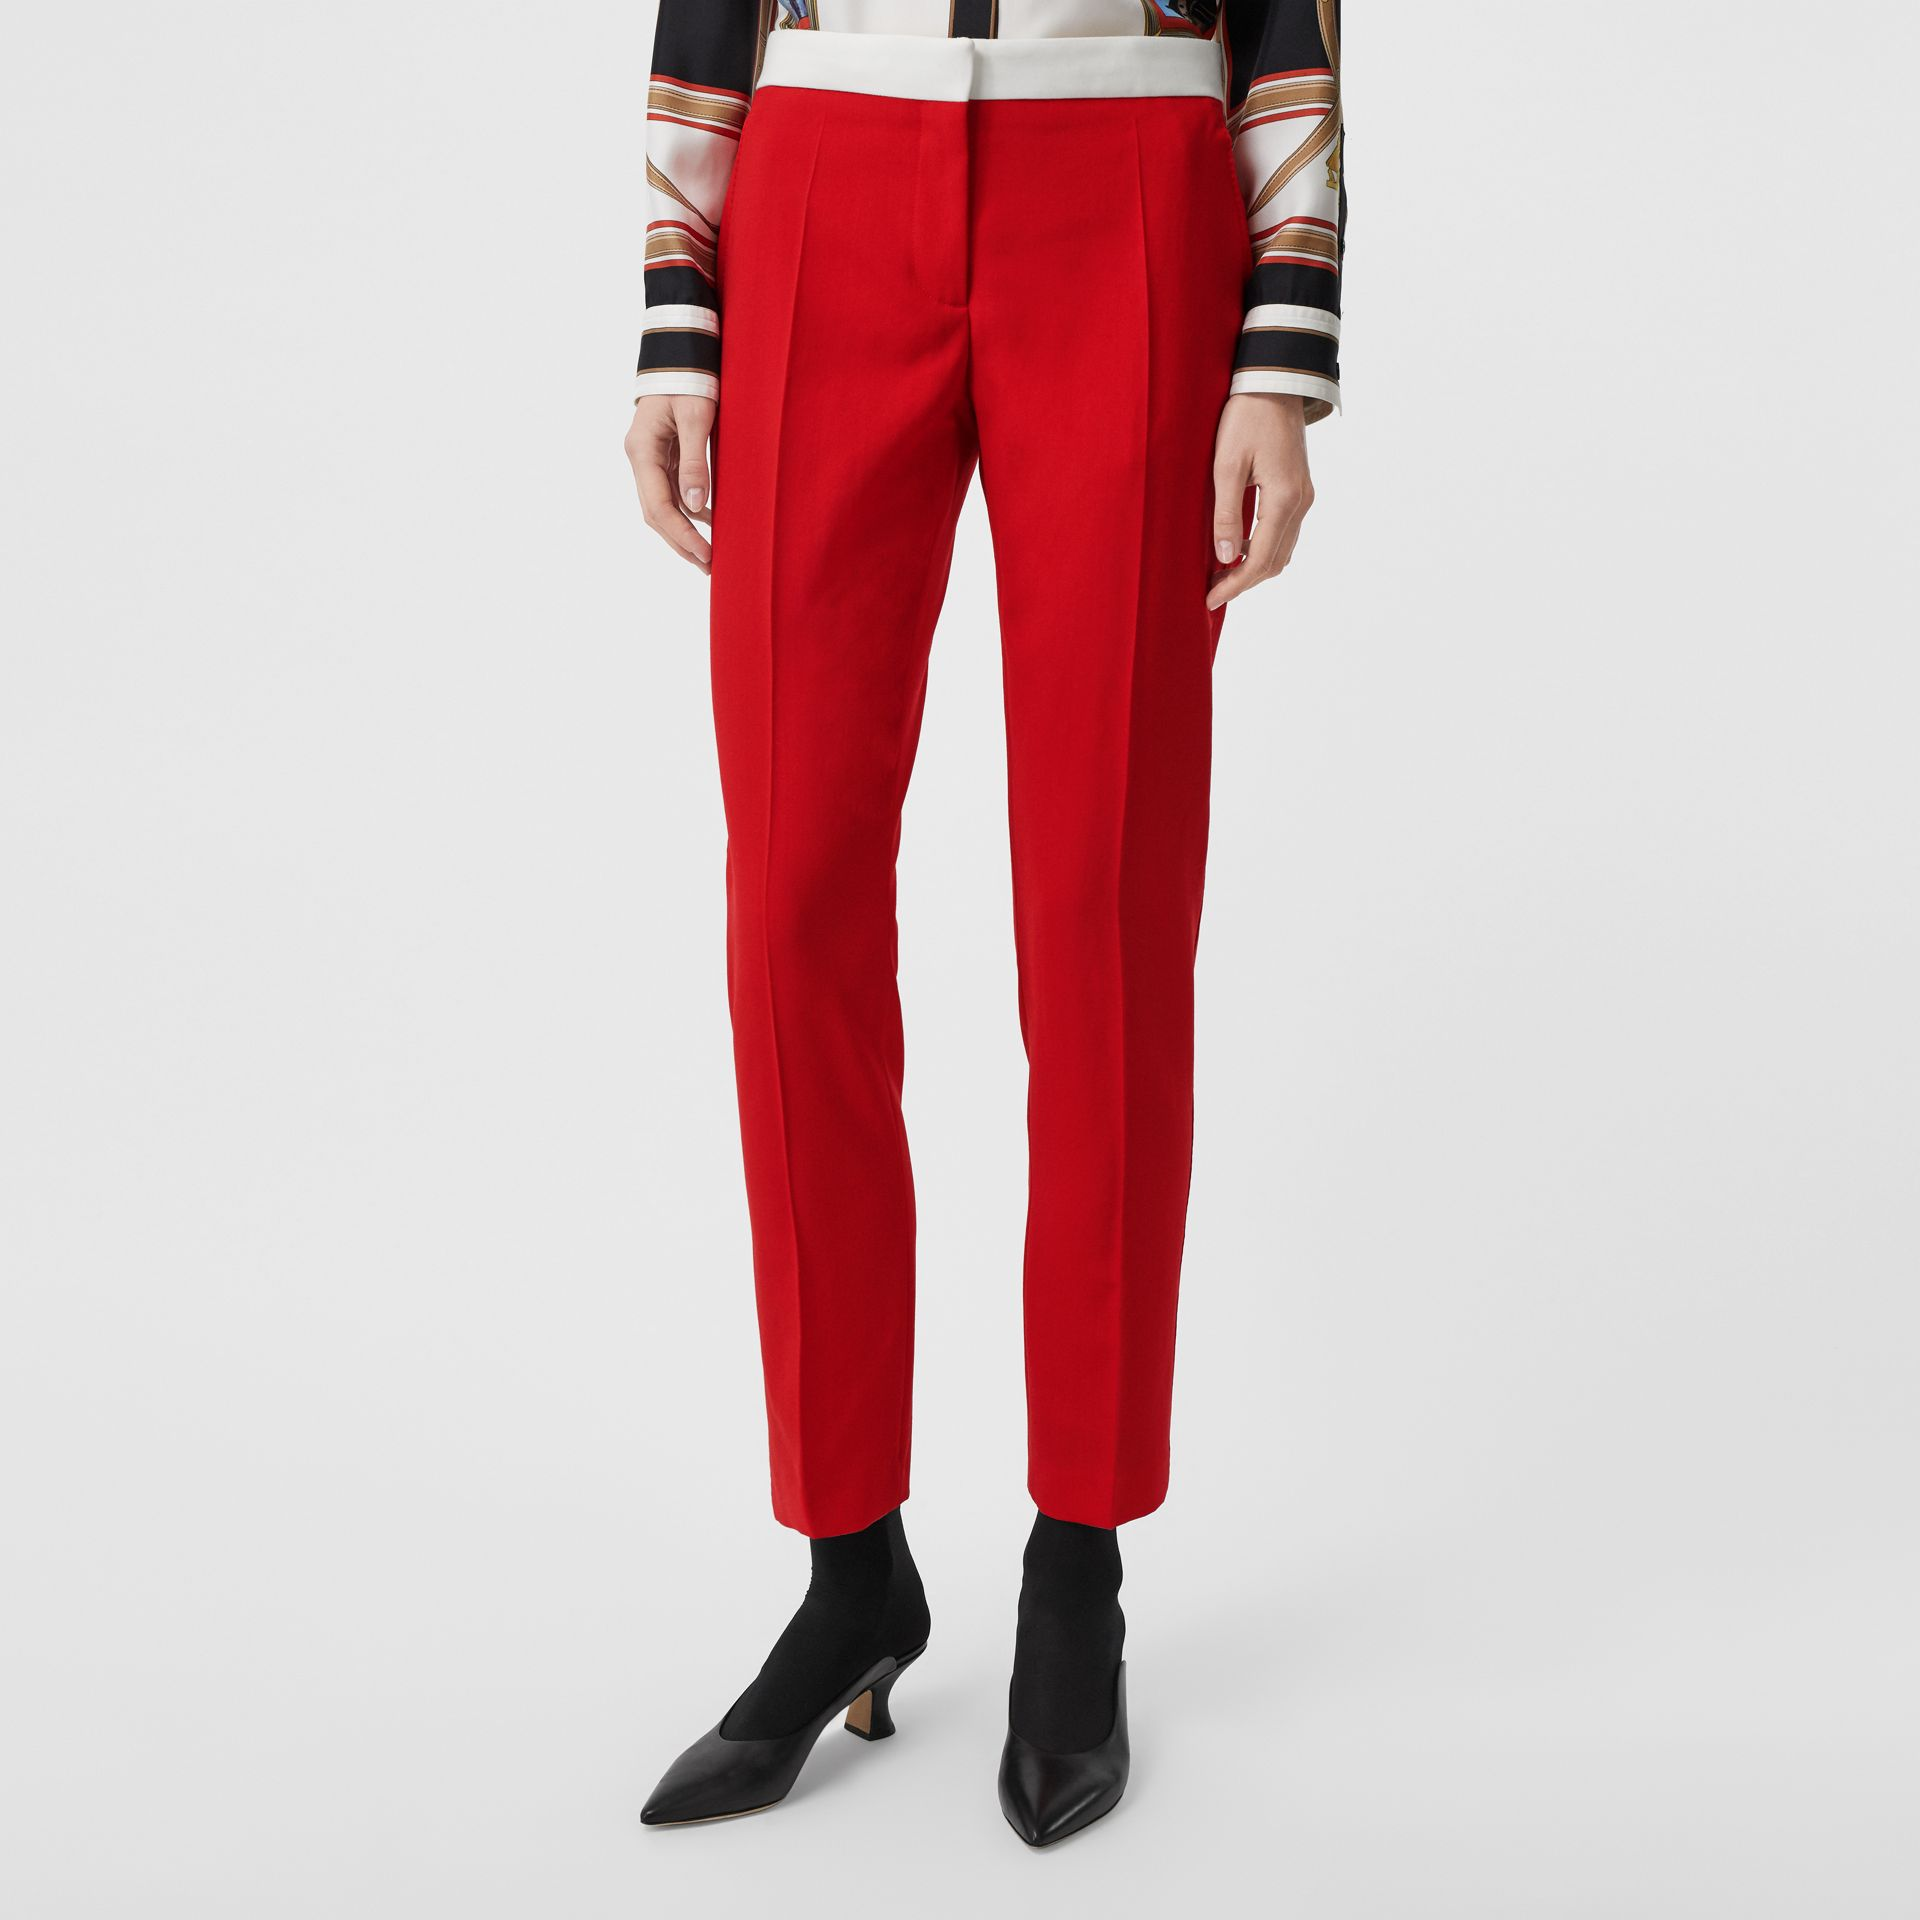 Two-tone Wool Tailored Trousers in Bright Red - Women | Burberry Canada - gallery image 4